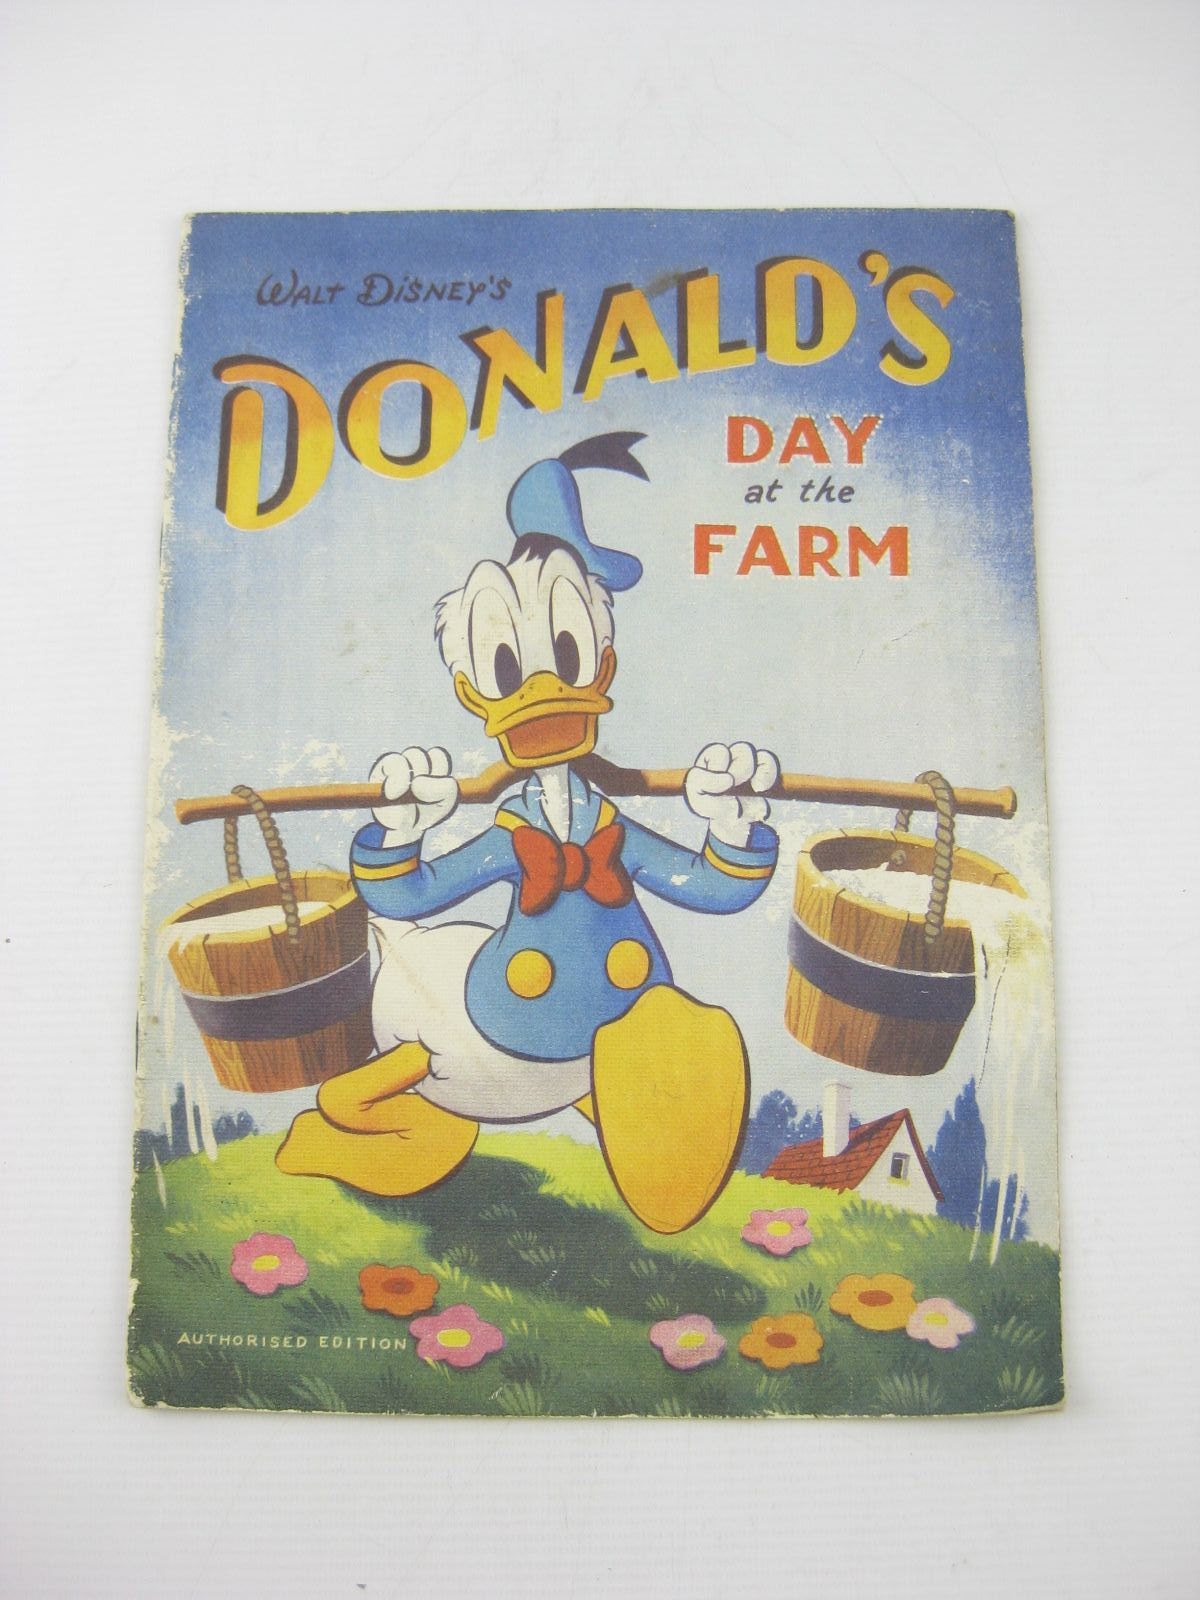 Photo of WALT DISNEY'S DONALD'S DAY AT THE FARM written by Disney, Walt published by Birn Brothers Ltd. (STOCK CODE: 1402338)  for sale by Stella & Rose's Books